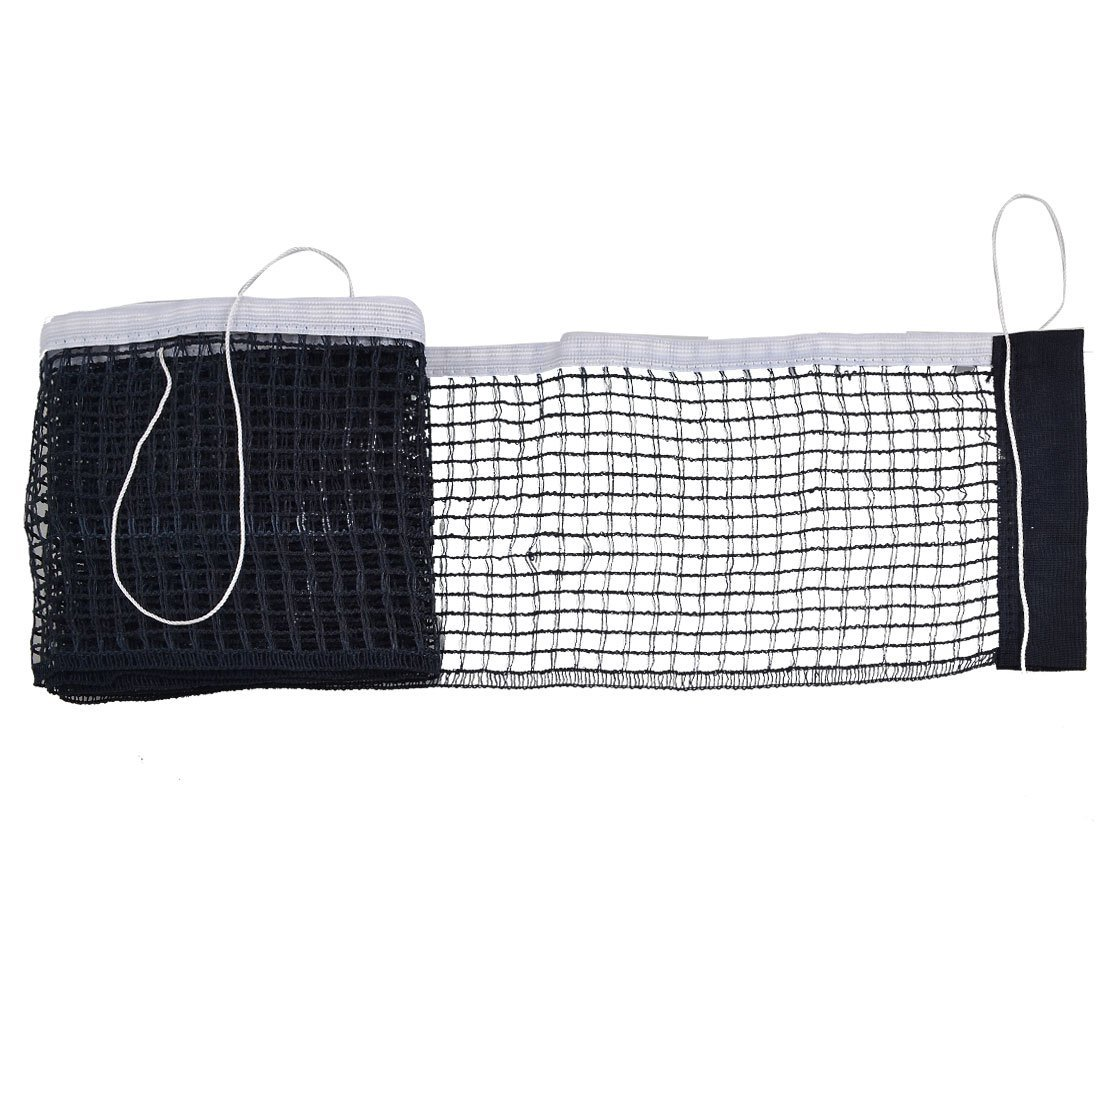 Good Deal Black New Table Tennis Ping Pong Net Replacement Mesh Sports 161cm X15cm